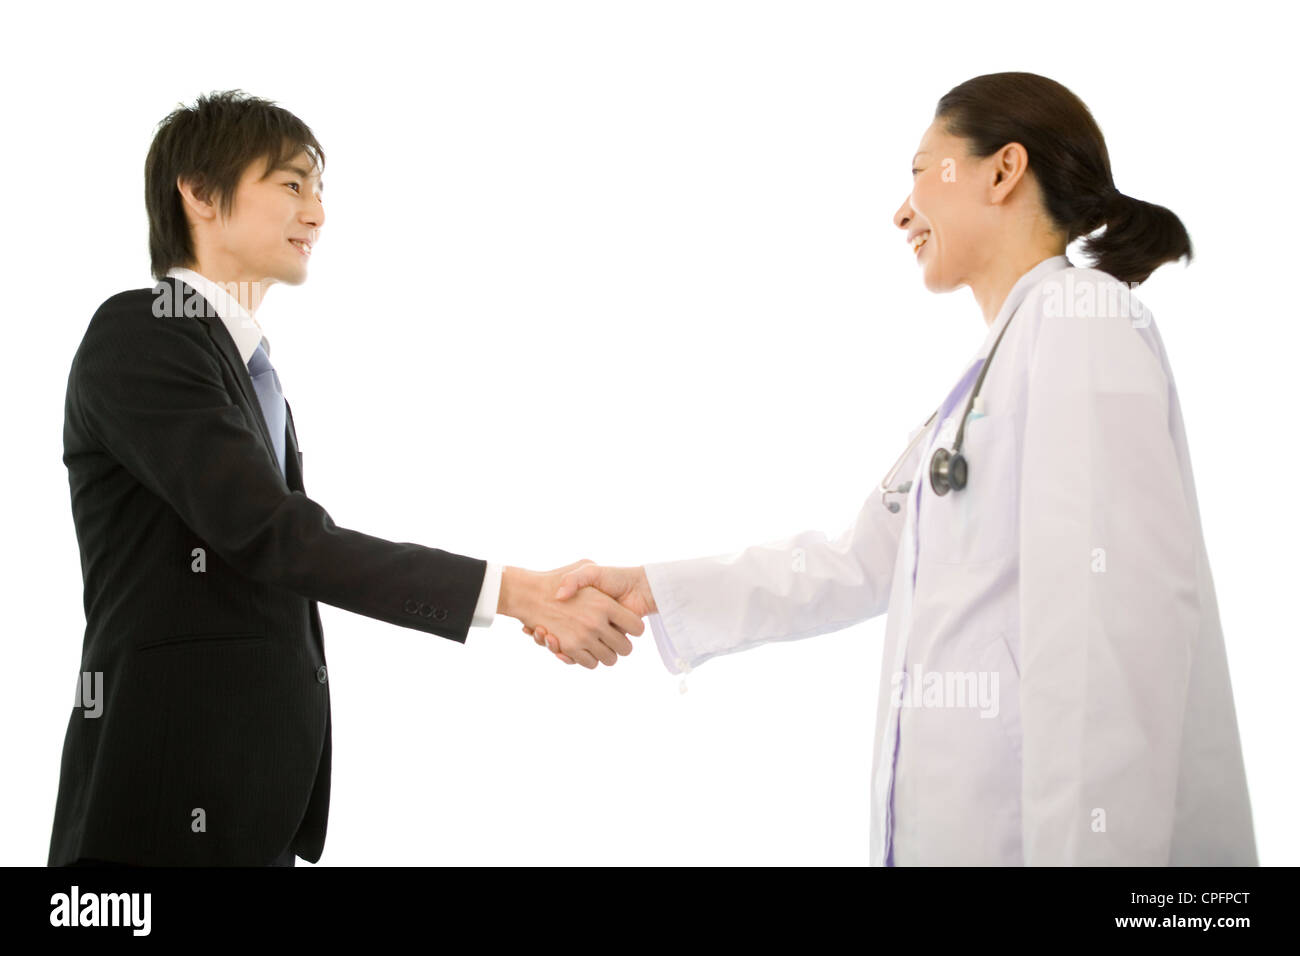 Pharmaceutical Representative Stock Photos & Pharmaceutical ...